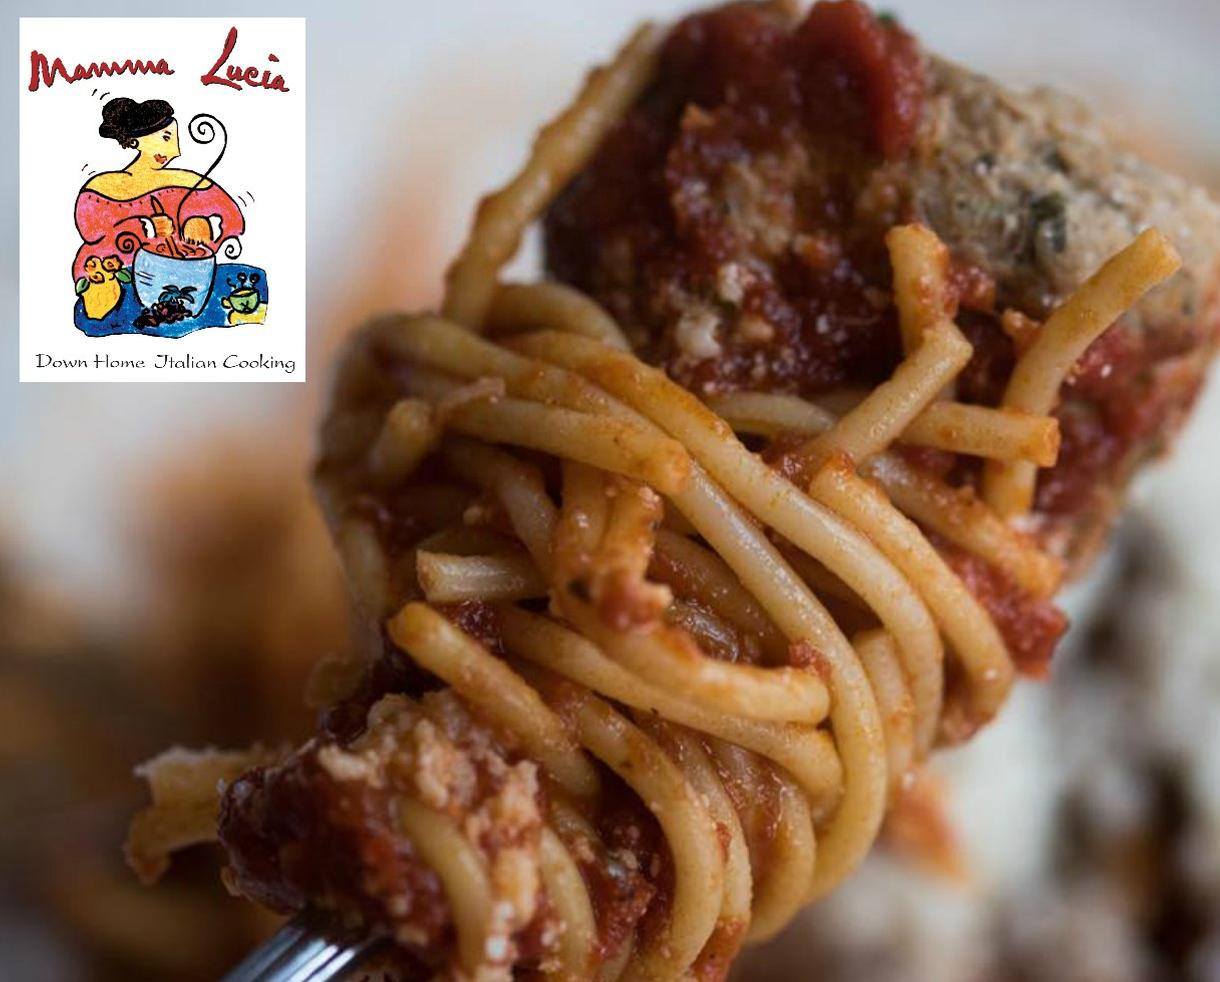 $20 for $30 Worth of Tasty Eats at Mamma Lucia